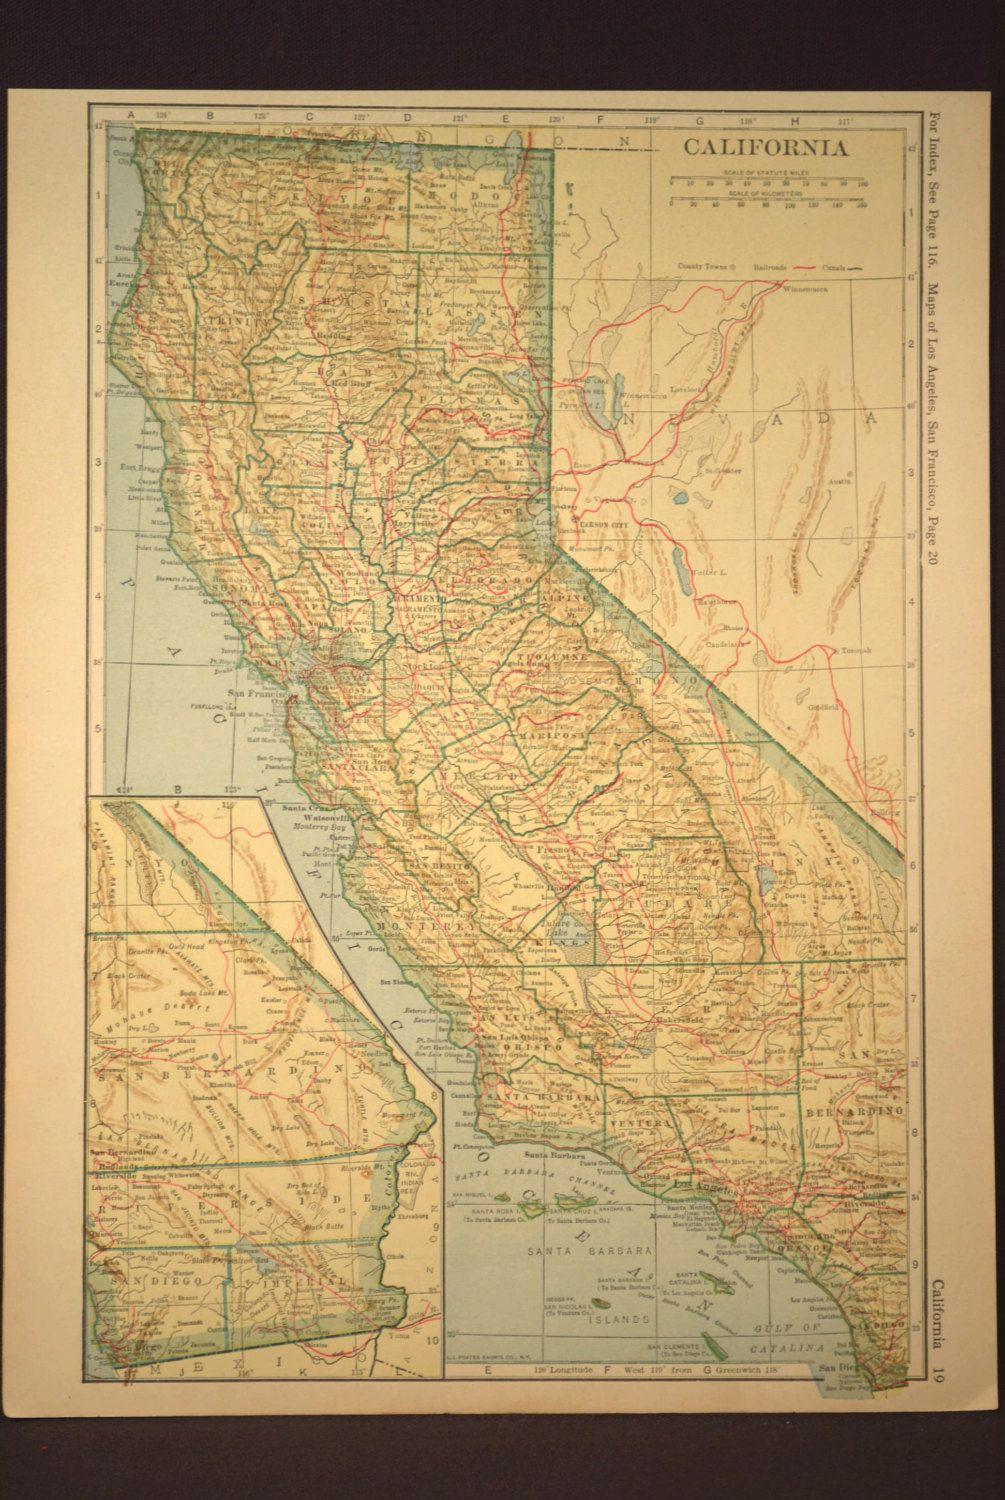 California Map California Railroad Antique Original 1920s | Map Wall ...